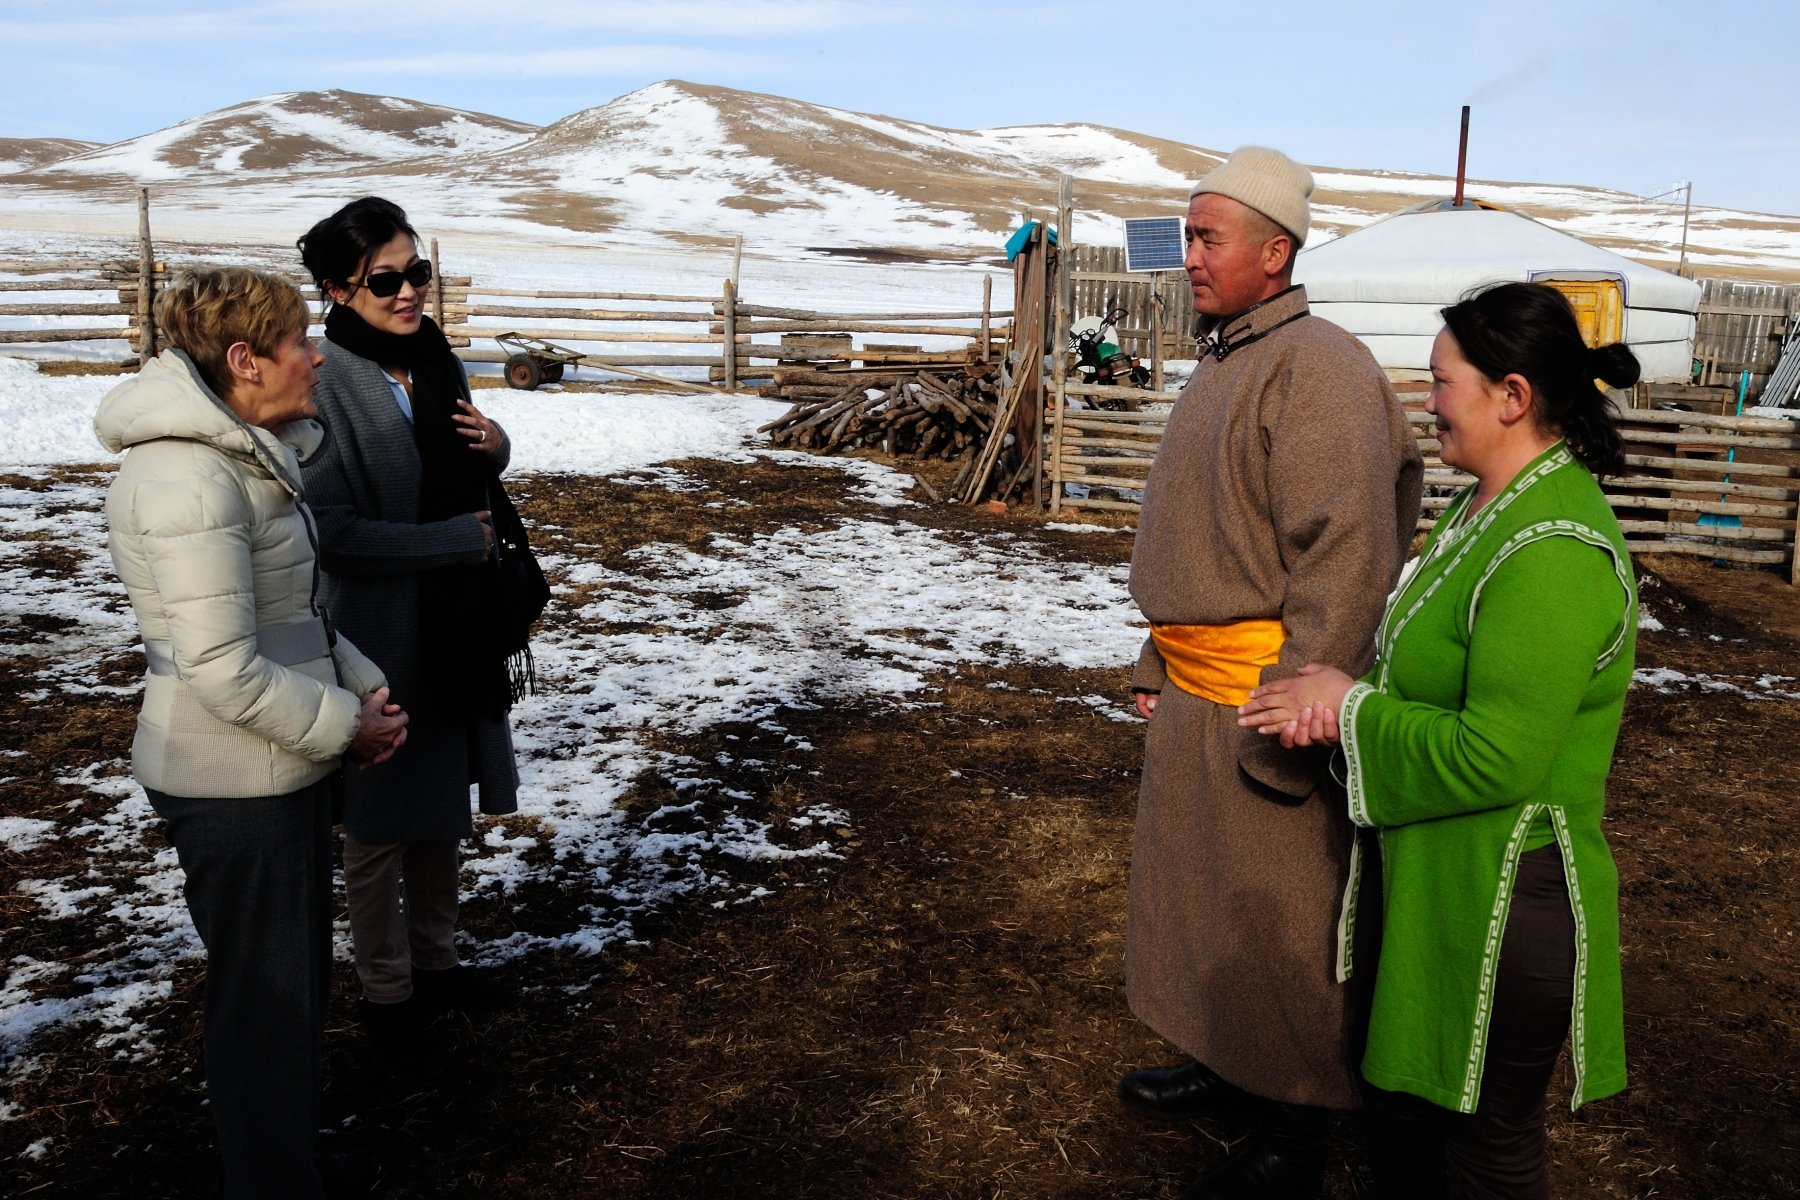 This visit gave Her Excellency the opportunity to learn more about the herder family's daily life.